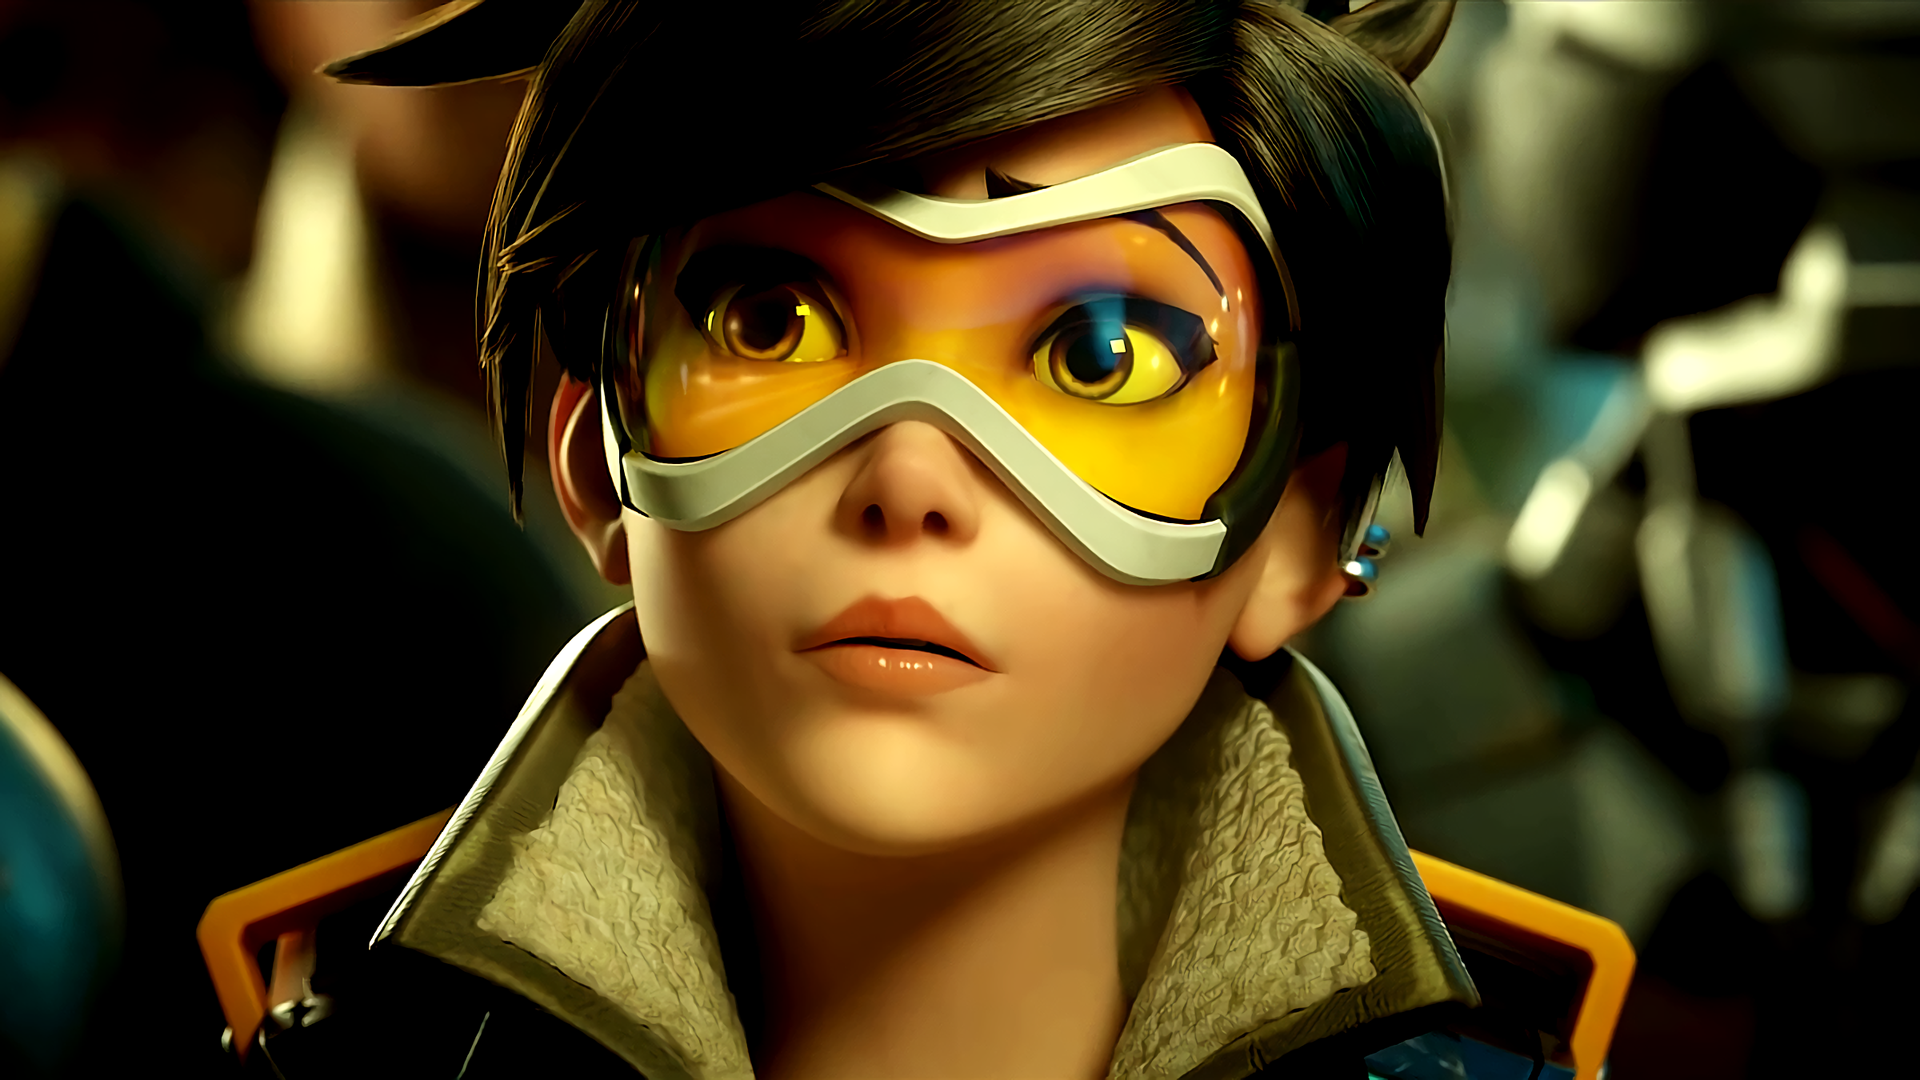 Tracer Wallpaper Widescreen Is 4K Wallpaper